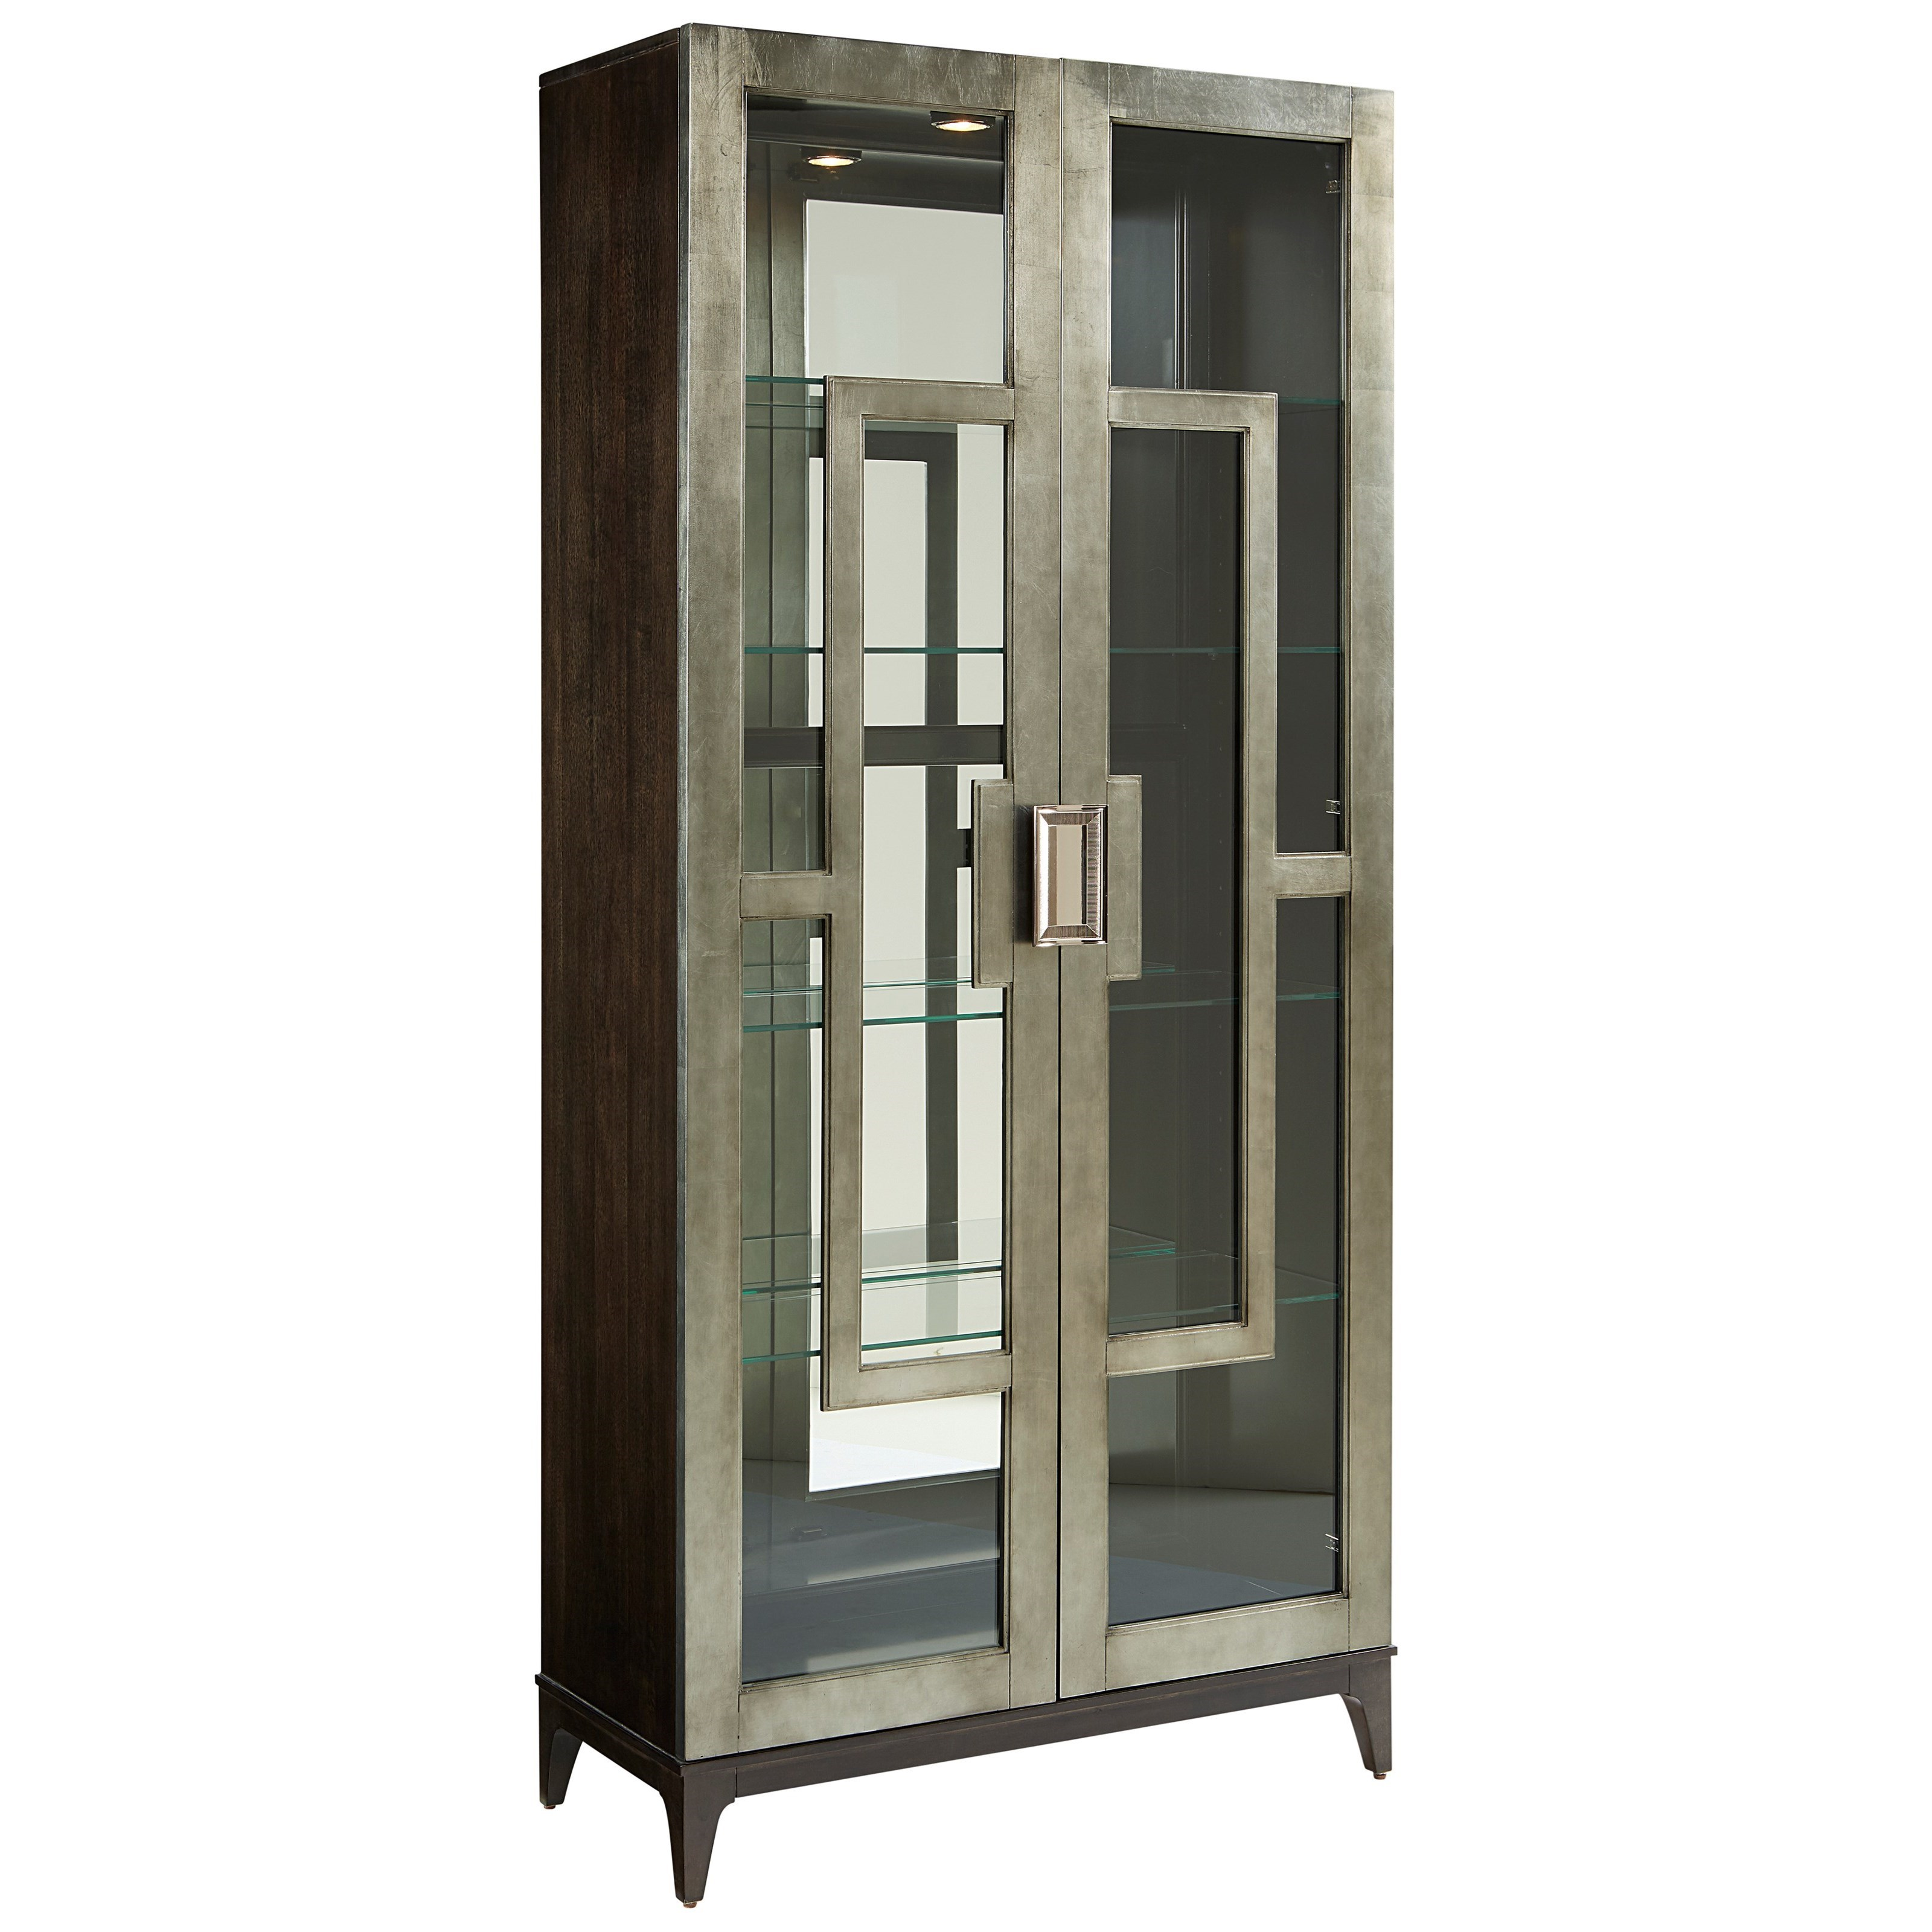 A R T Furniture Inc Prossimo Contemporary Art Deco Curio Cabinet With Touch Lighting Howell Furniture Curio Cabinets